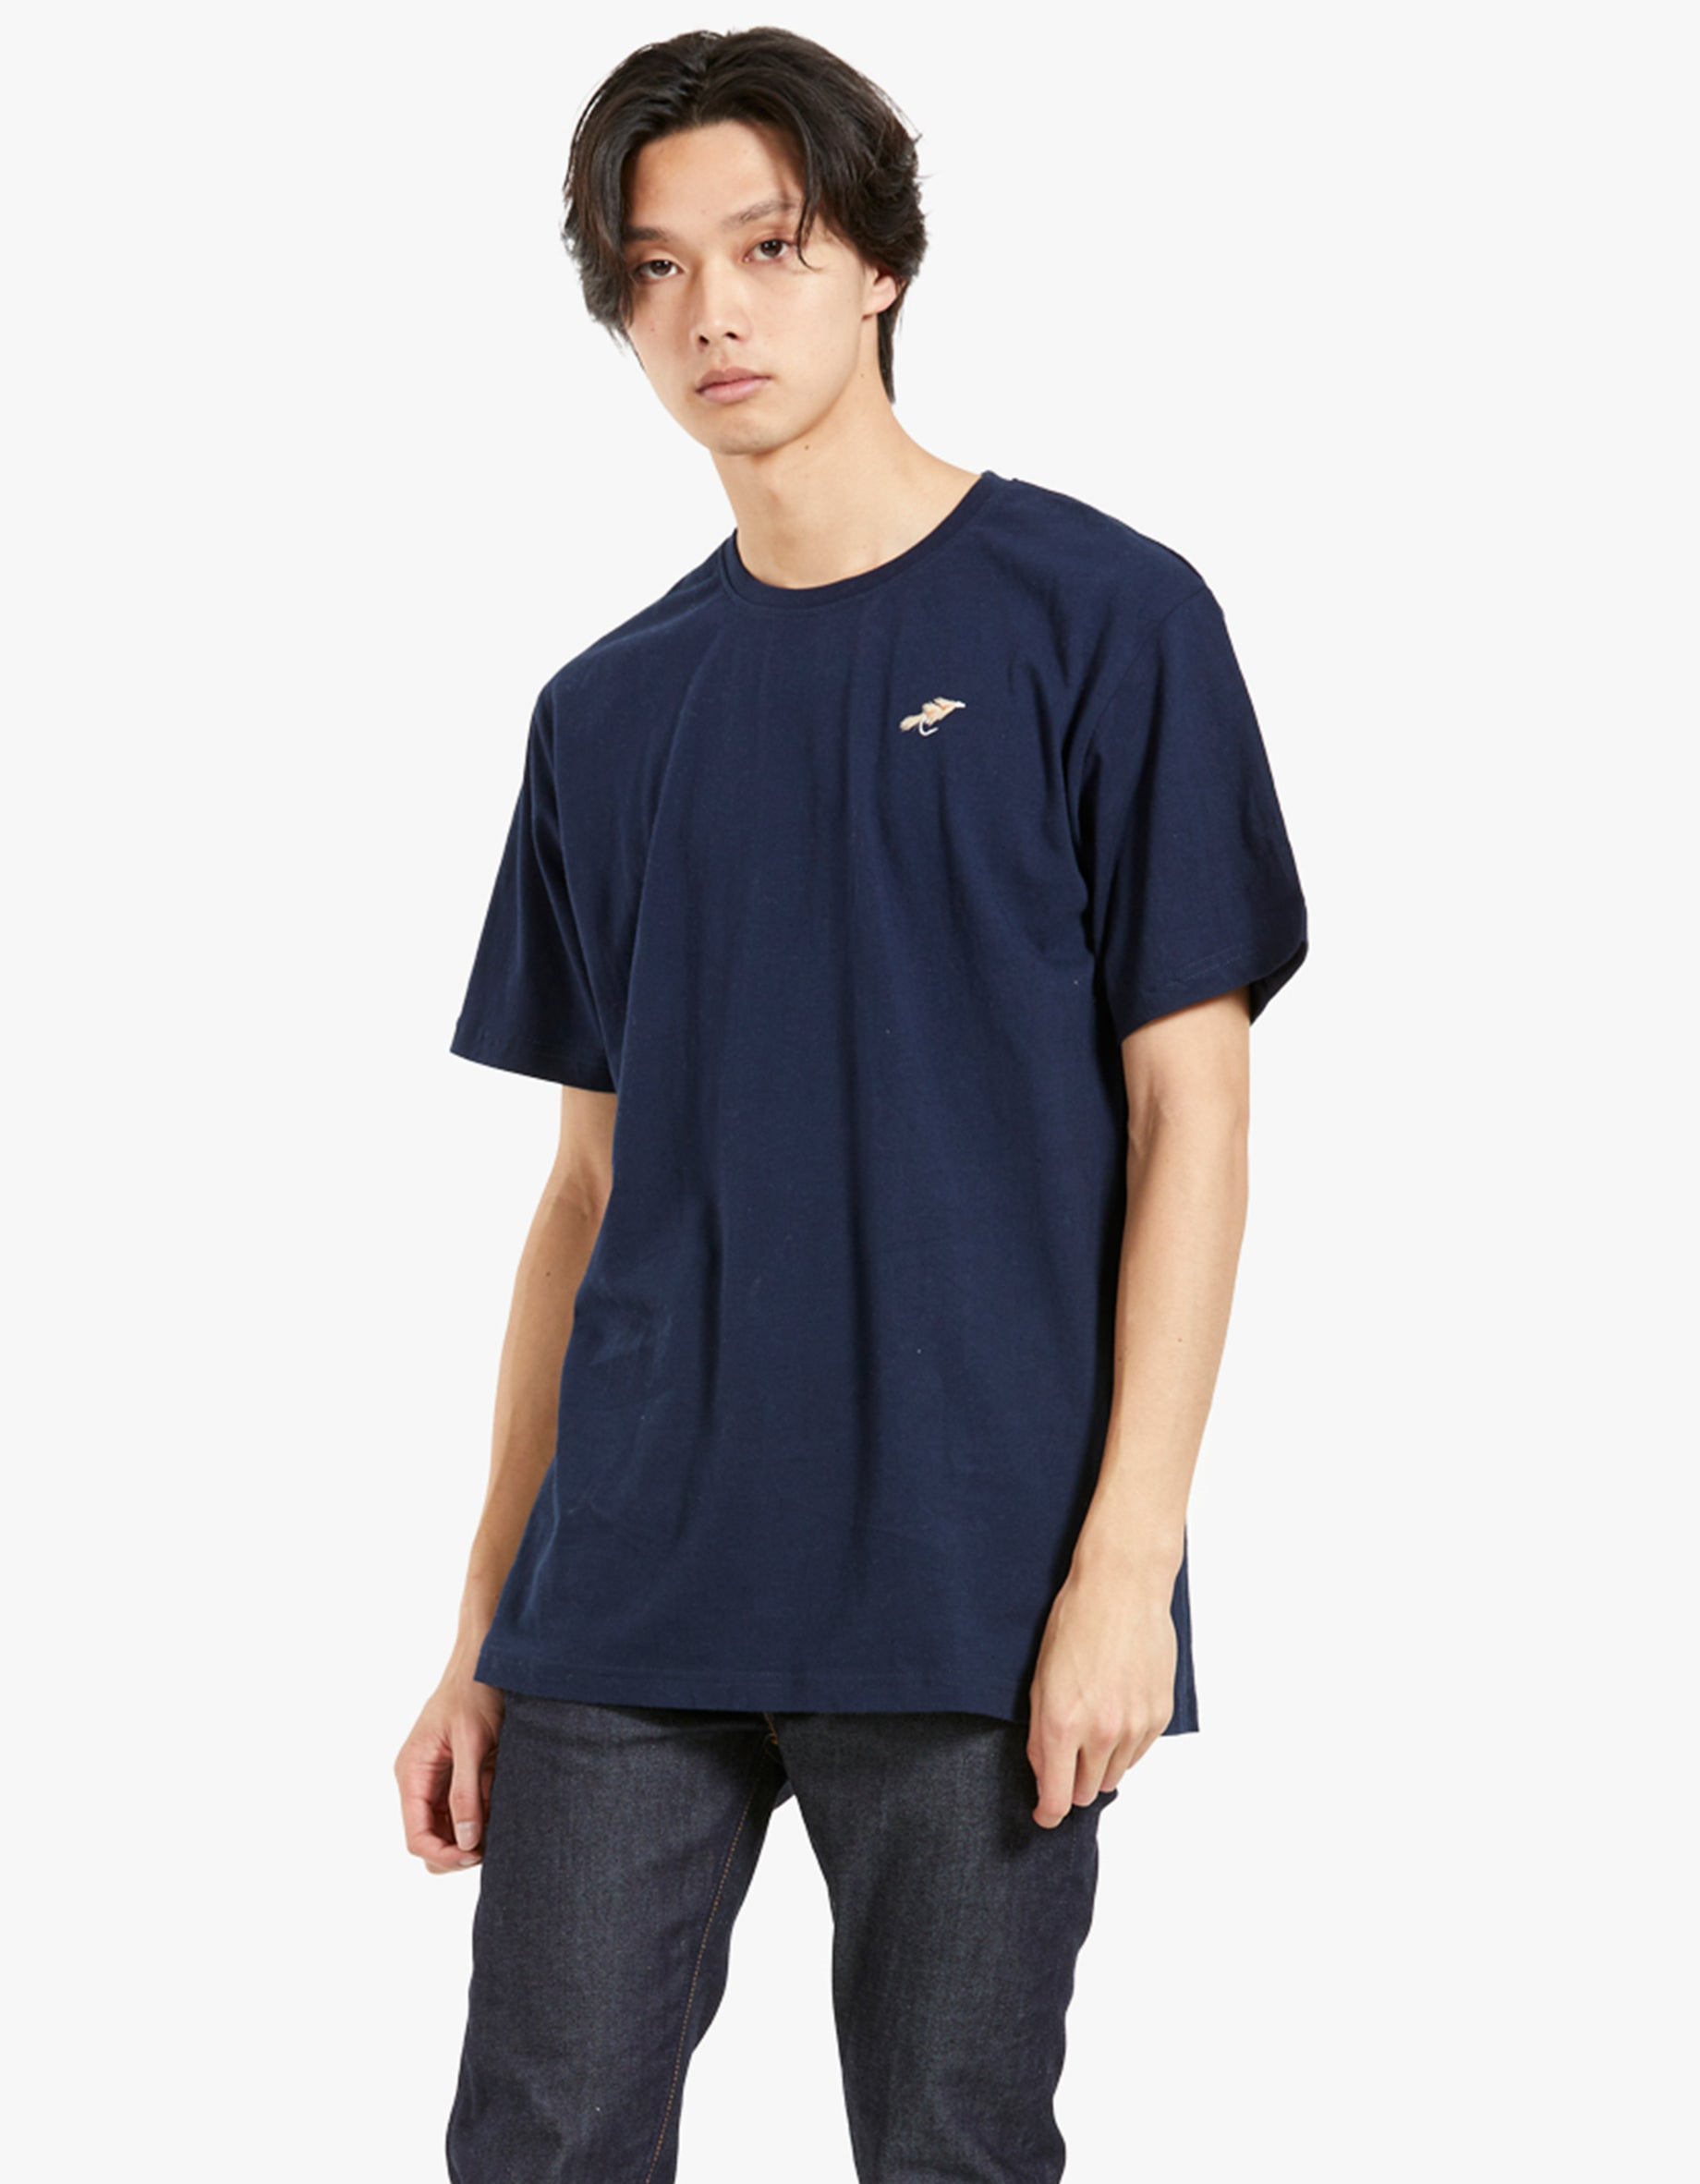 Fly Chest Tee - Navy